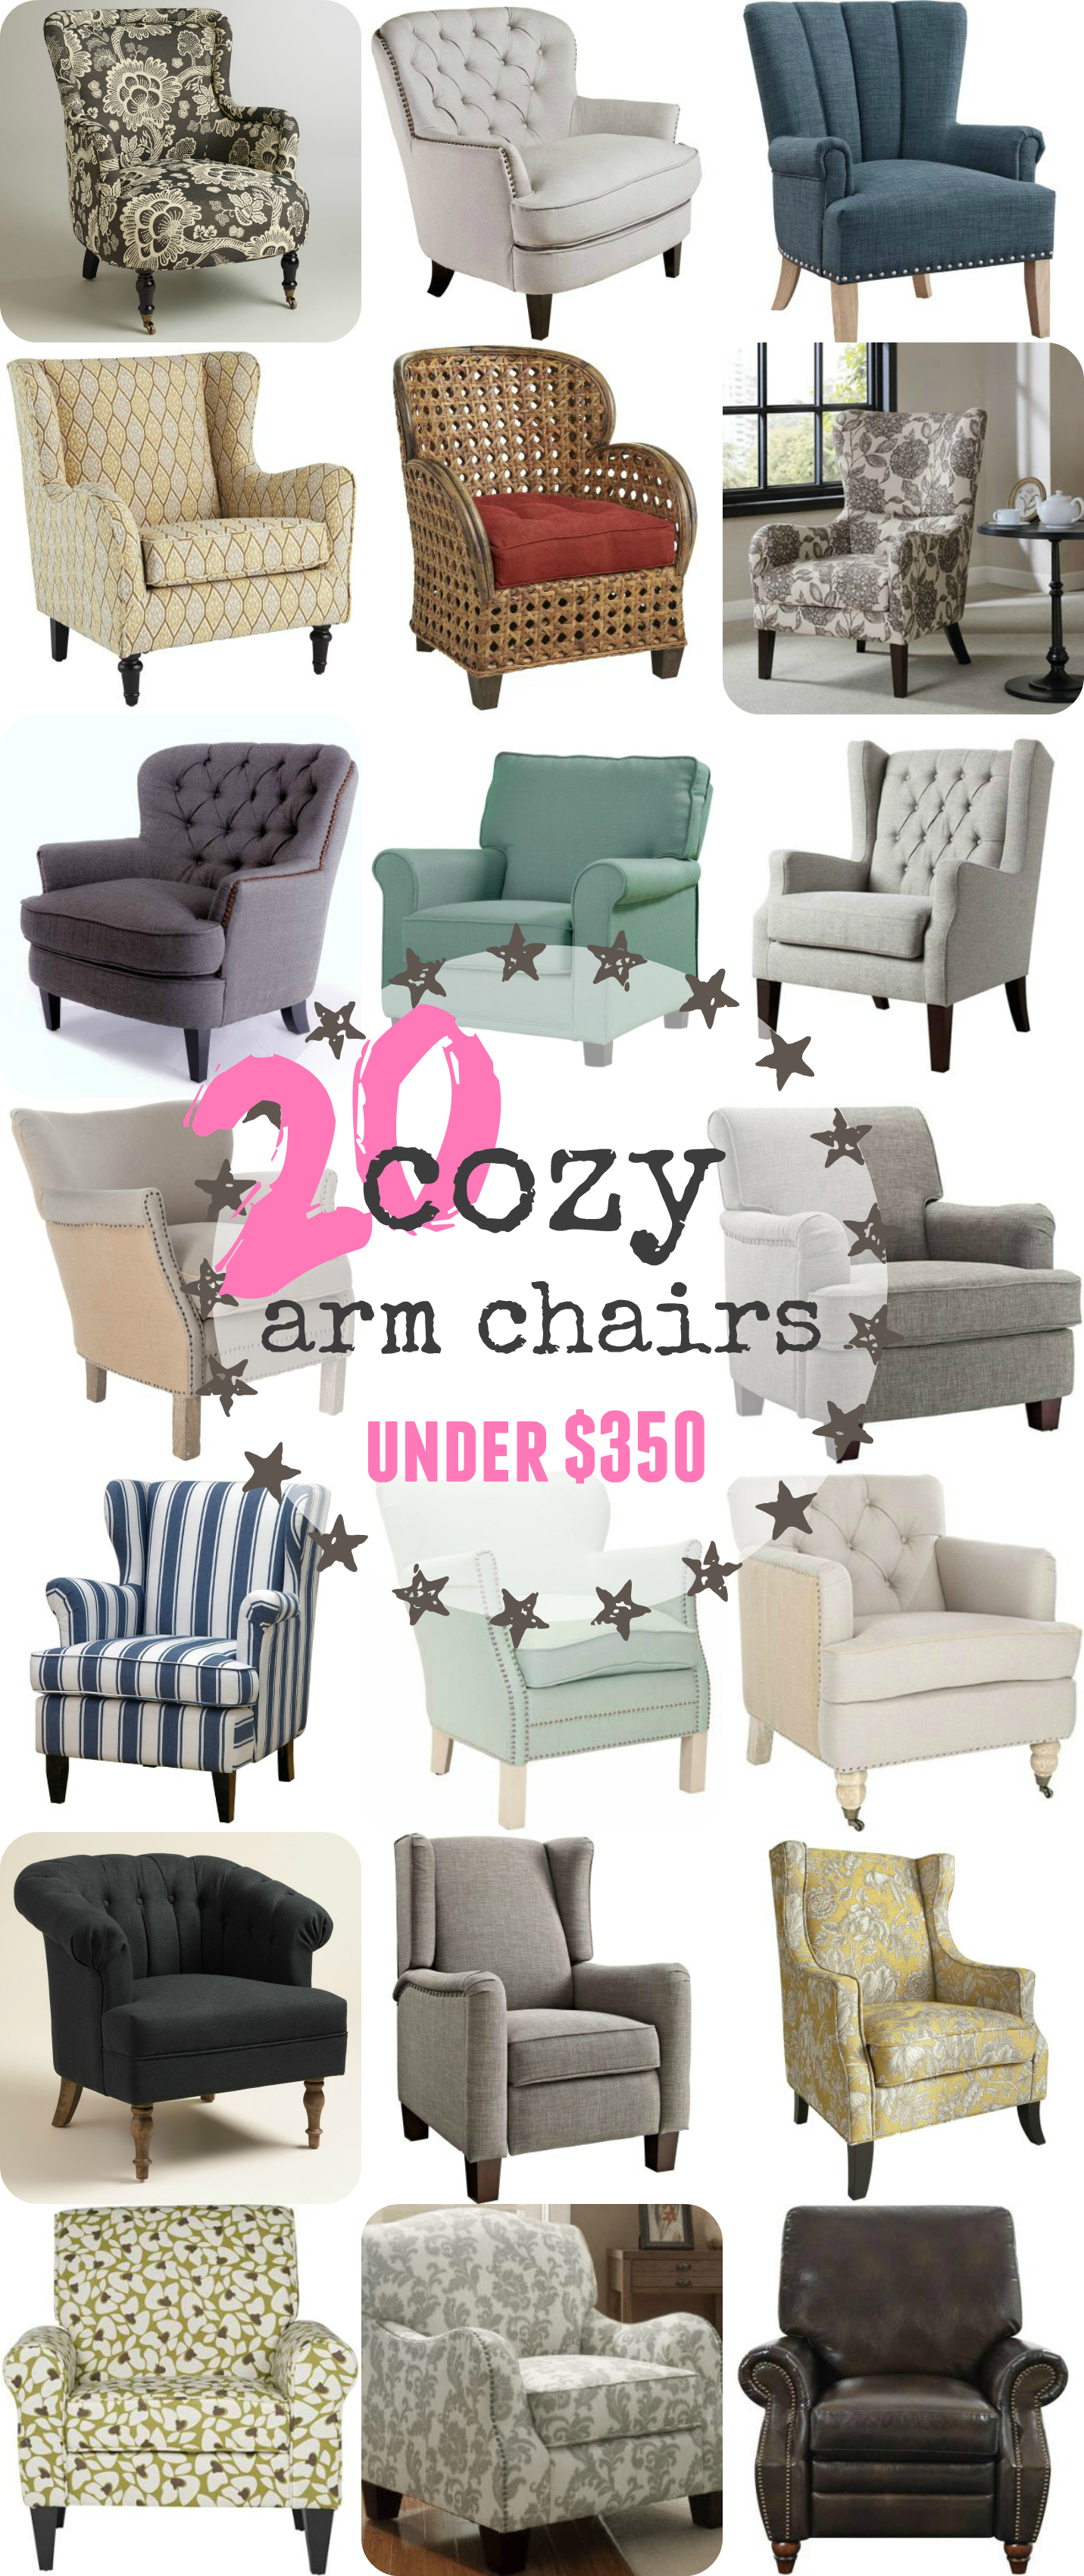 20 cozy reading chairs under $350